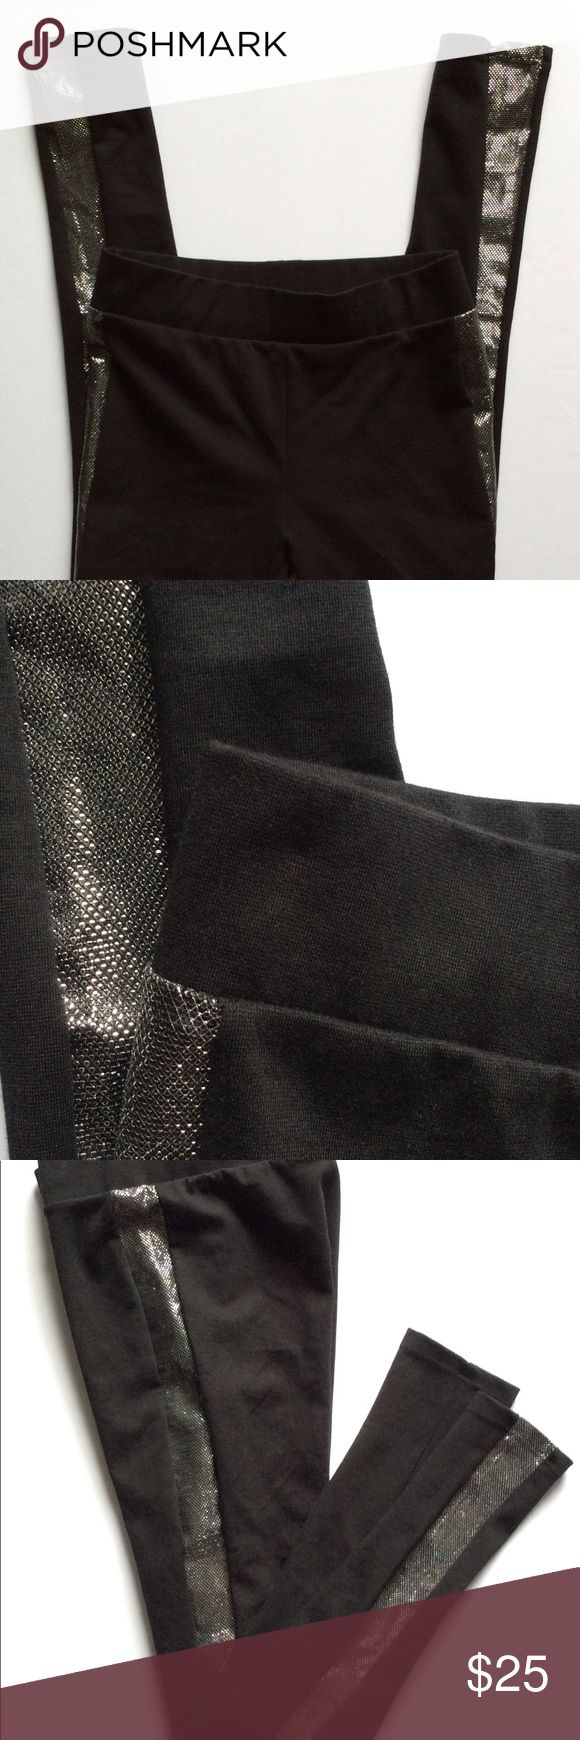 """Nine West Metallic Tuxedo Side Stripe Leggings You'll sparkle for days in these comfy and stylish leggings!  Pair with a cute crop top or a tunic for more coverage. A pair of fabulous booties could easily complete the look.  Please ask for measurements if necessary. The leggings are best suited for ladies up to 5'3"""" and 135 lbs. based on the measurement chart on the packaging. Nine West Pants Leggings"""